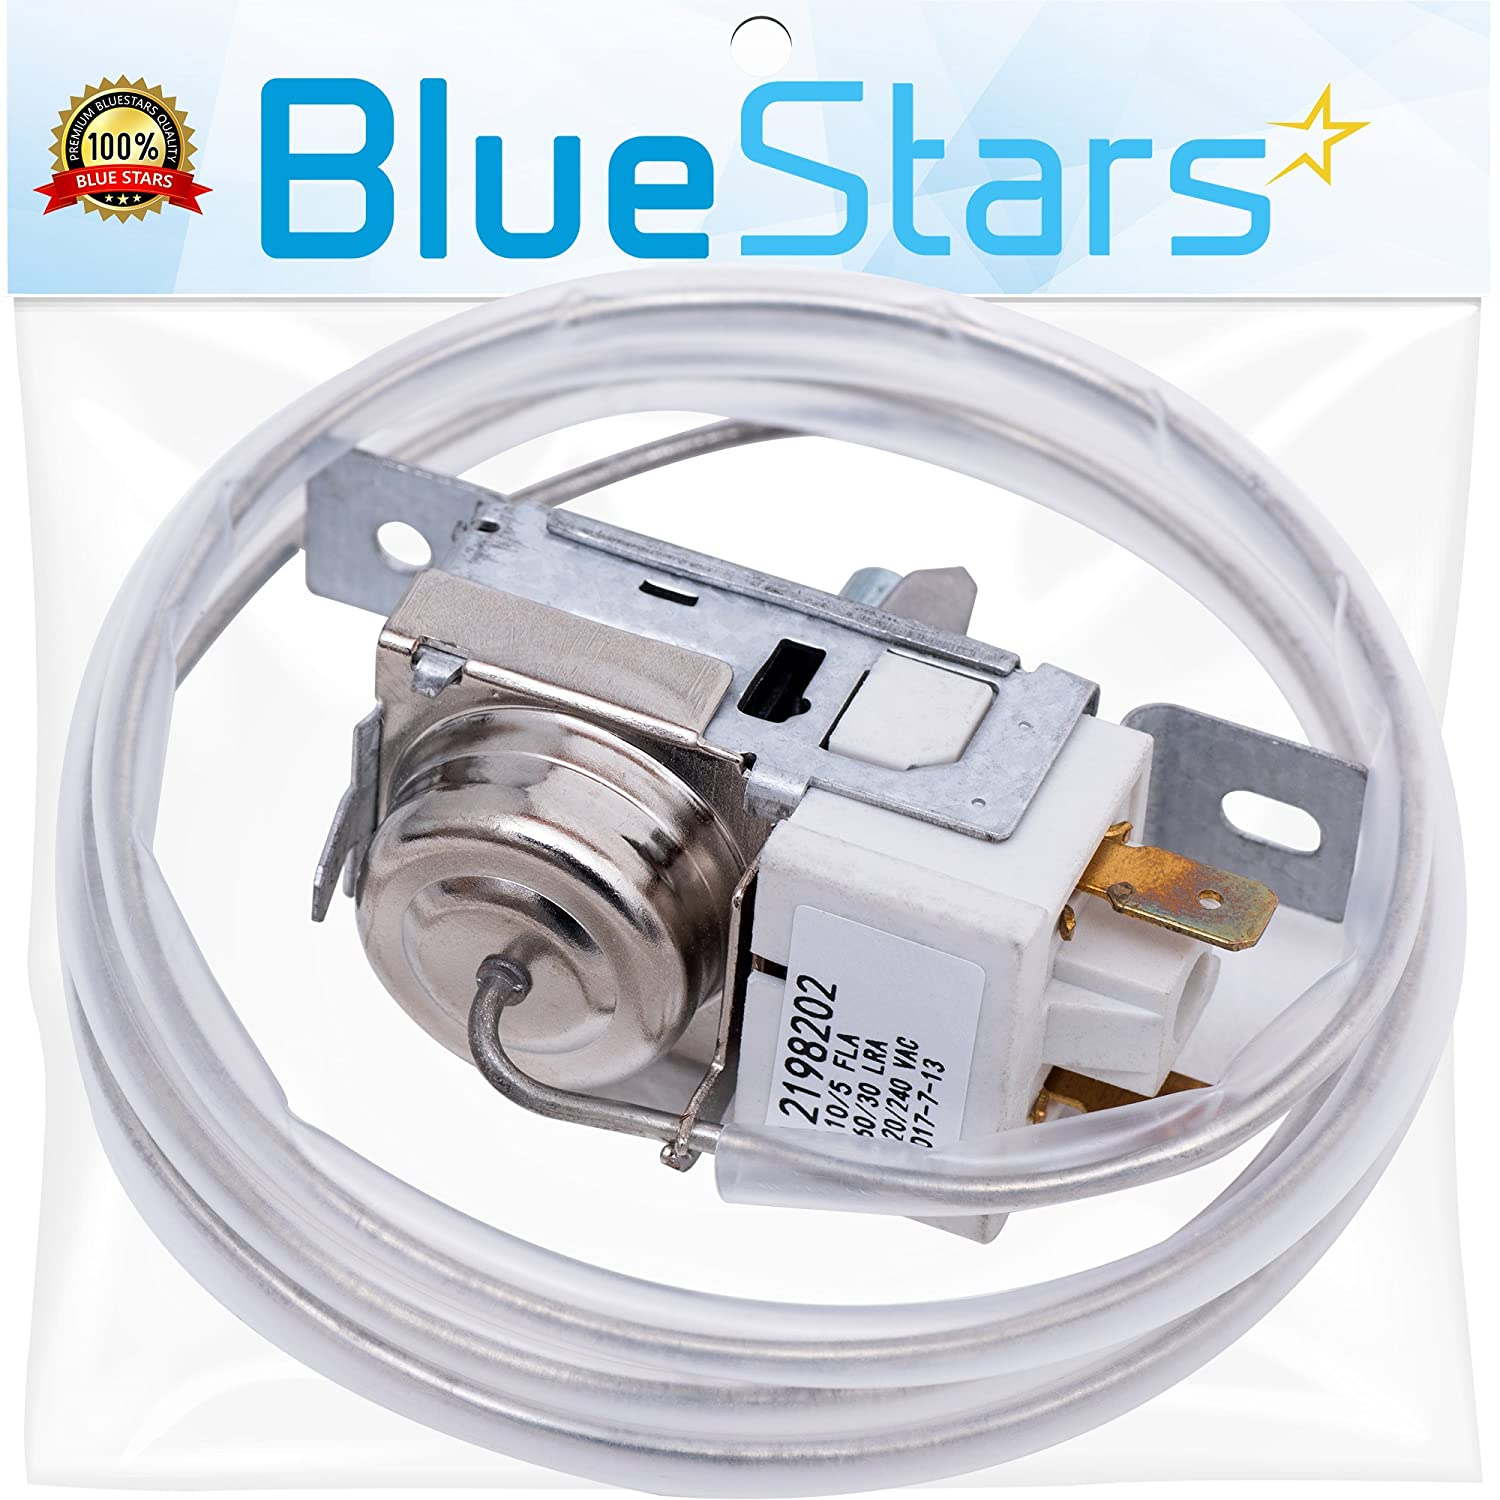 Ultra Durable 2198202 Refrigerator Cold Control Thermostat Replacement by Blue Stars - Exact Fit for Whirlpool & Kenmore Fridge - Replaces 2161284 2198201